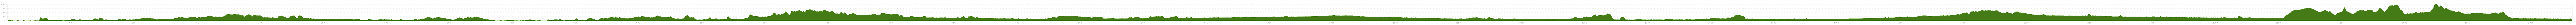 Elevation profile Cycle Tour Pilgrims-Route EV3 Bayonne - Cologne